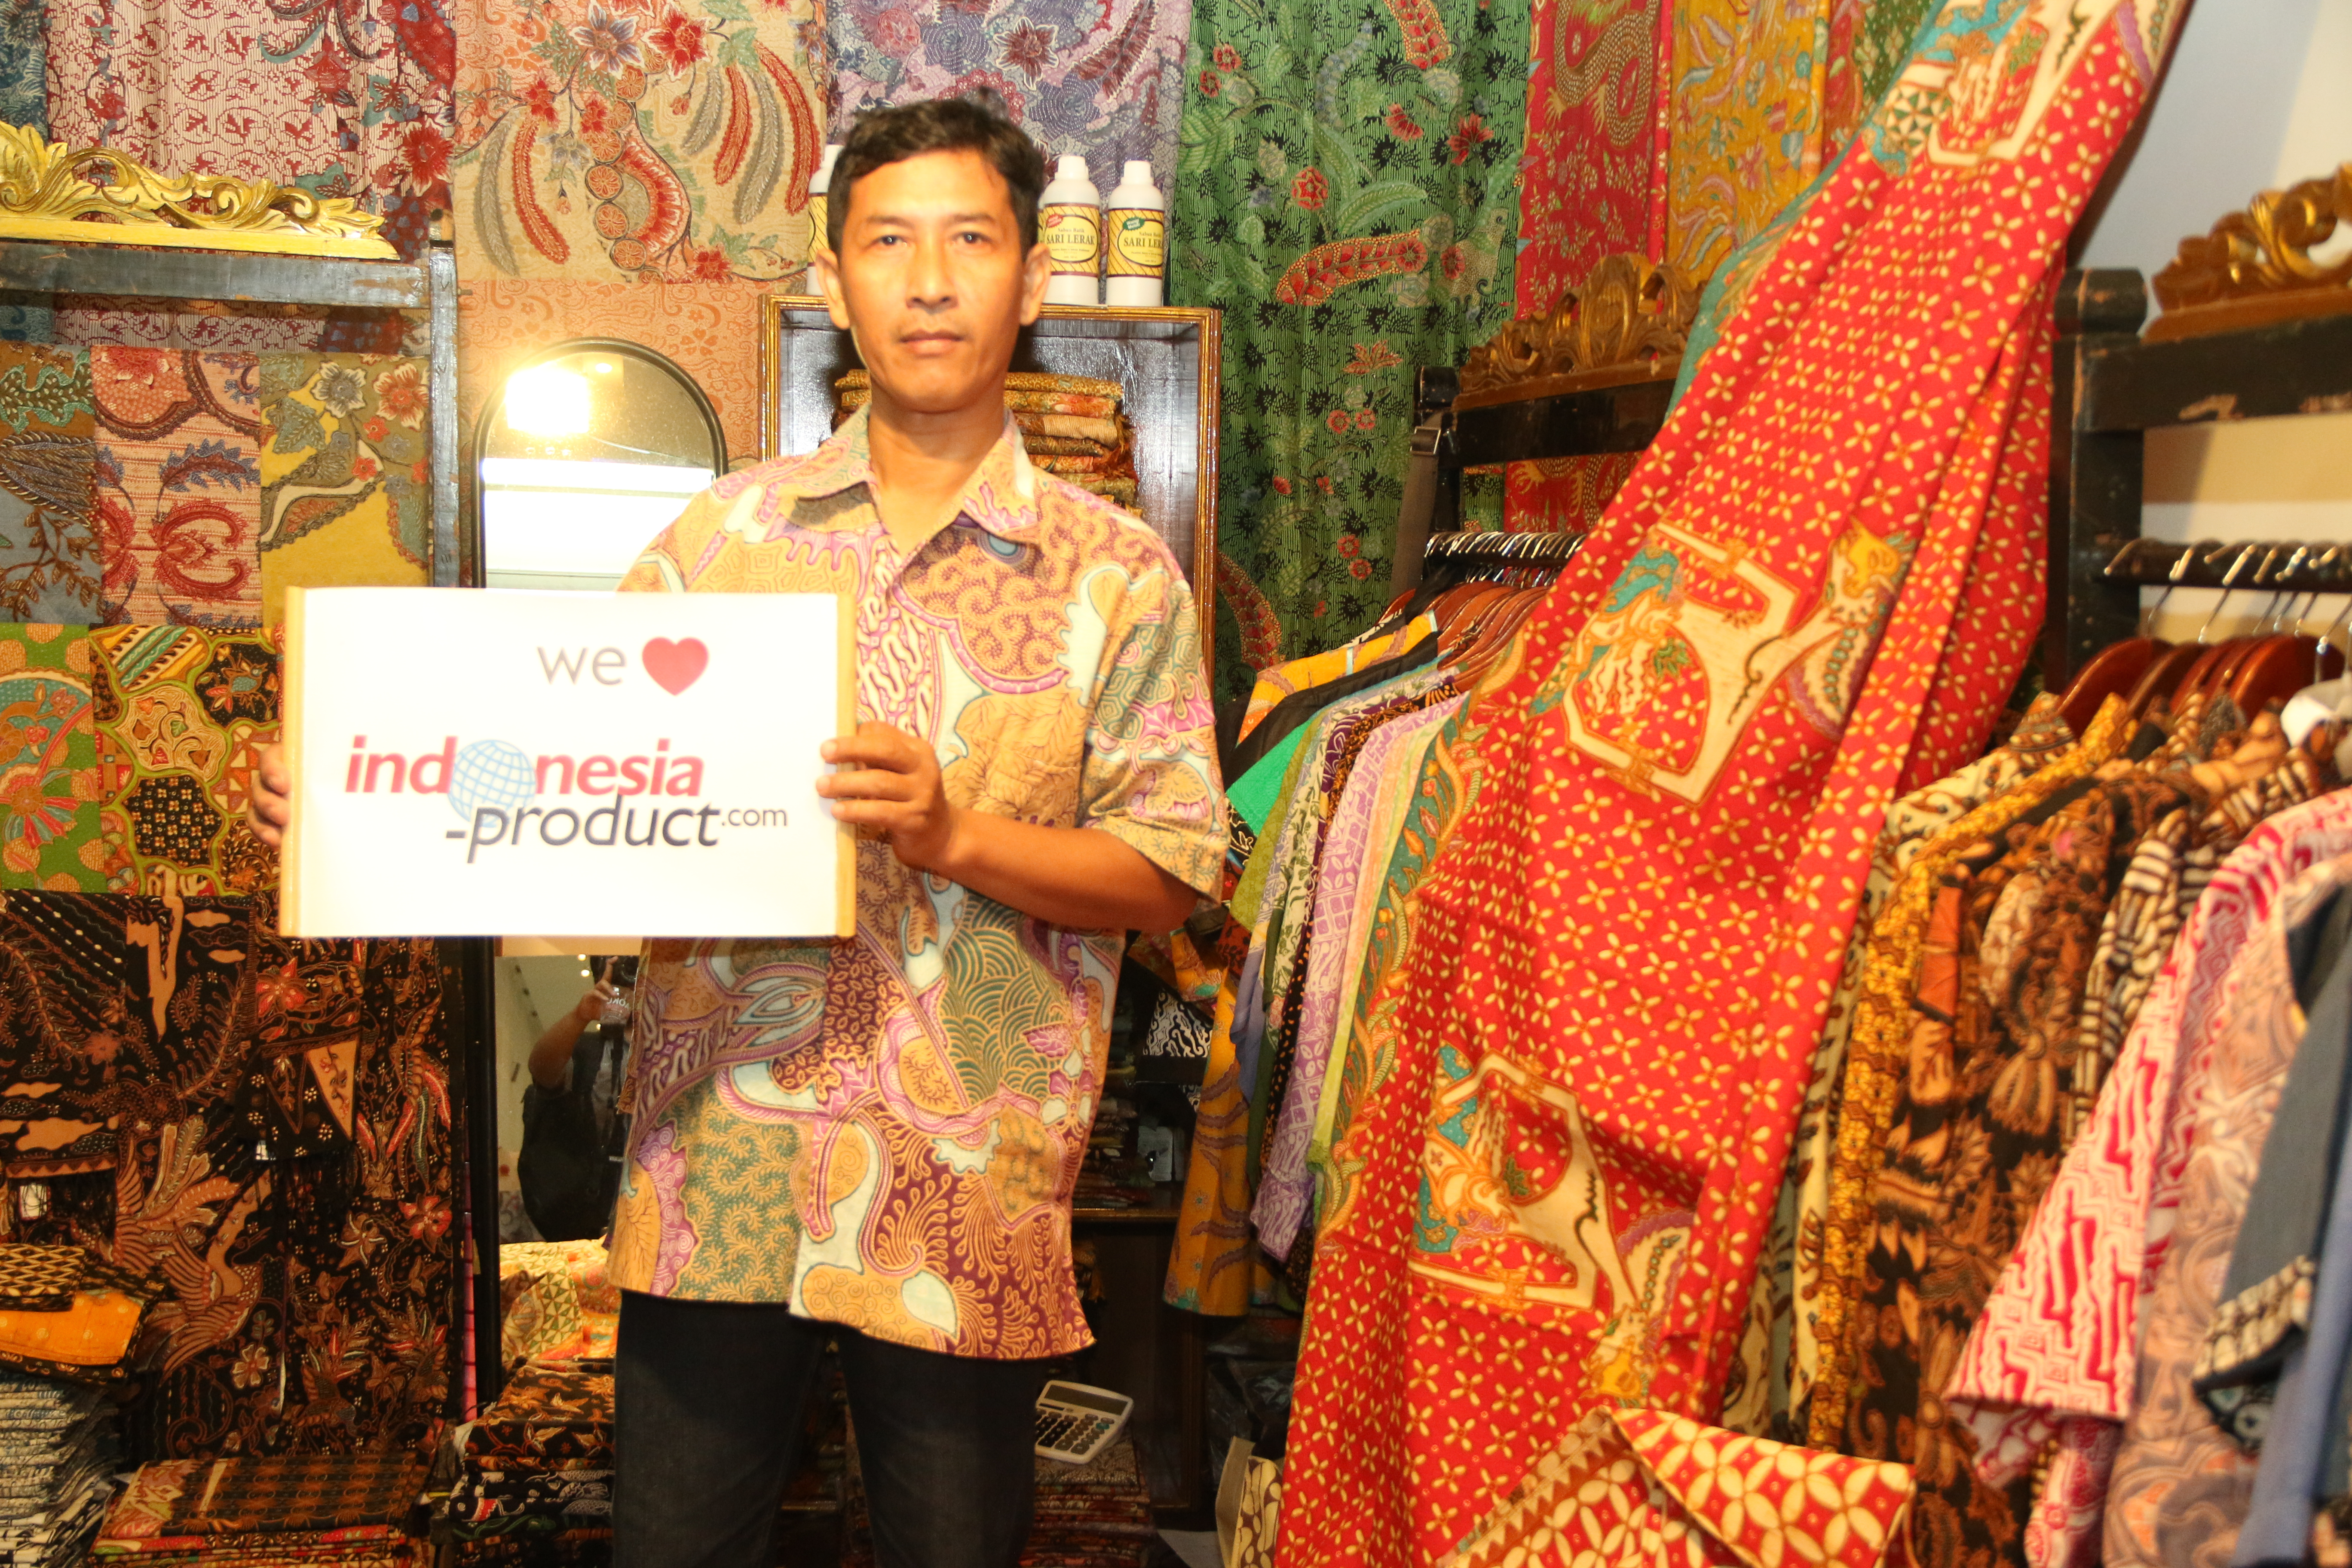 Moro Dadi Batik supplies not only variety clothes like shirt for man and woman, but also fabric products with various ethnic and beautiful motifs